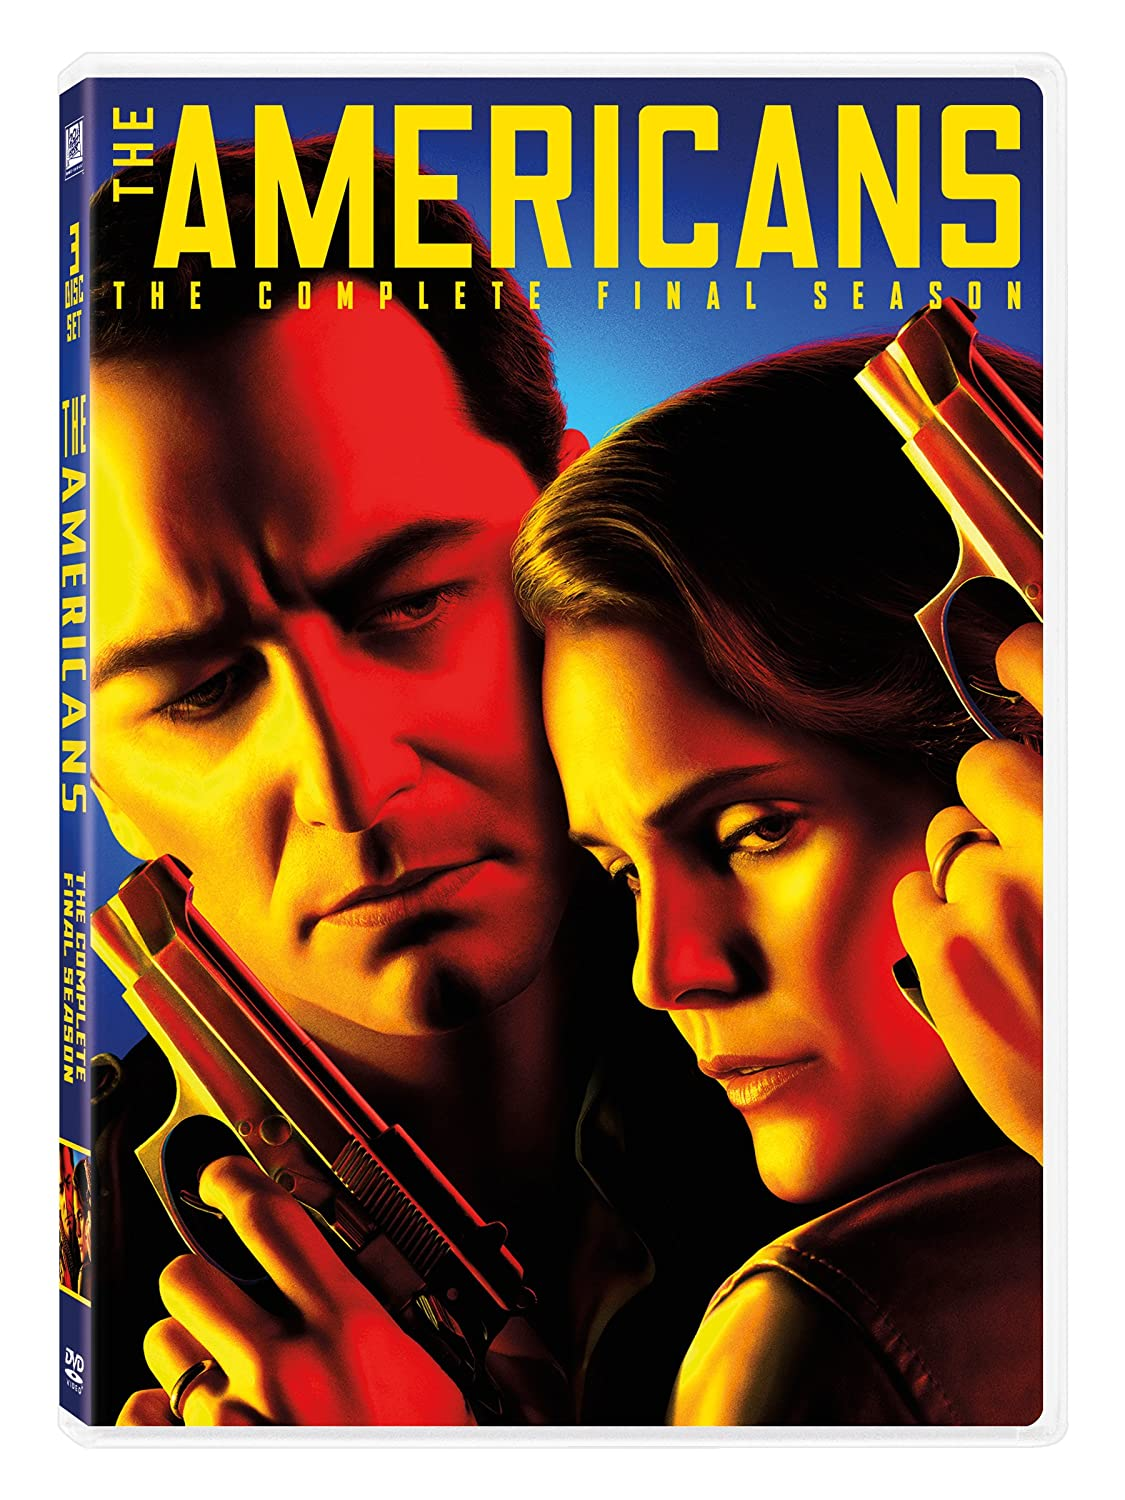 The Americans: The Complete Final Season Keri Russell Matthew Rhys Noah Emmerich Holly Taylor